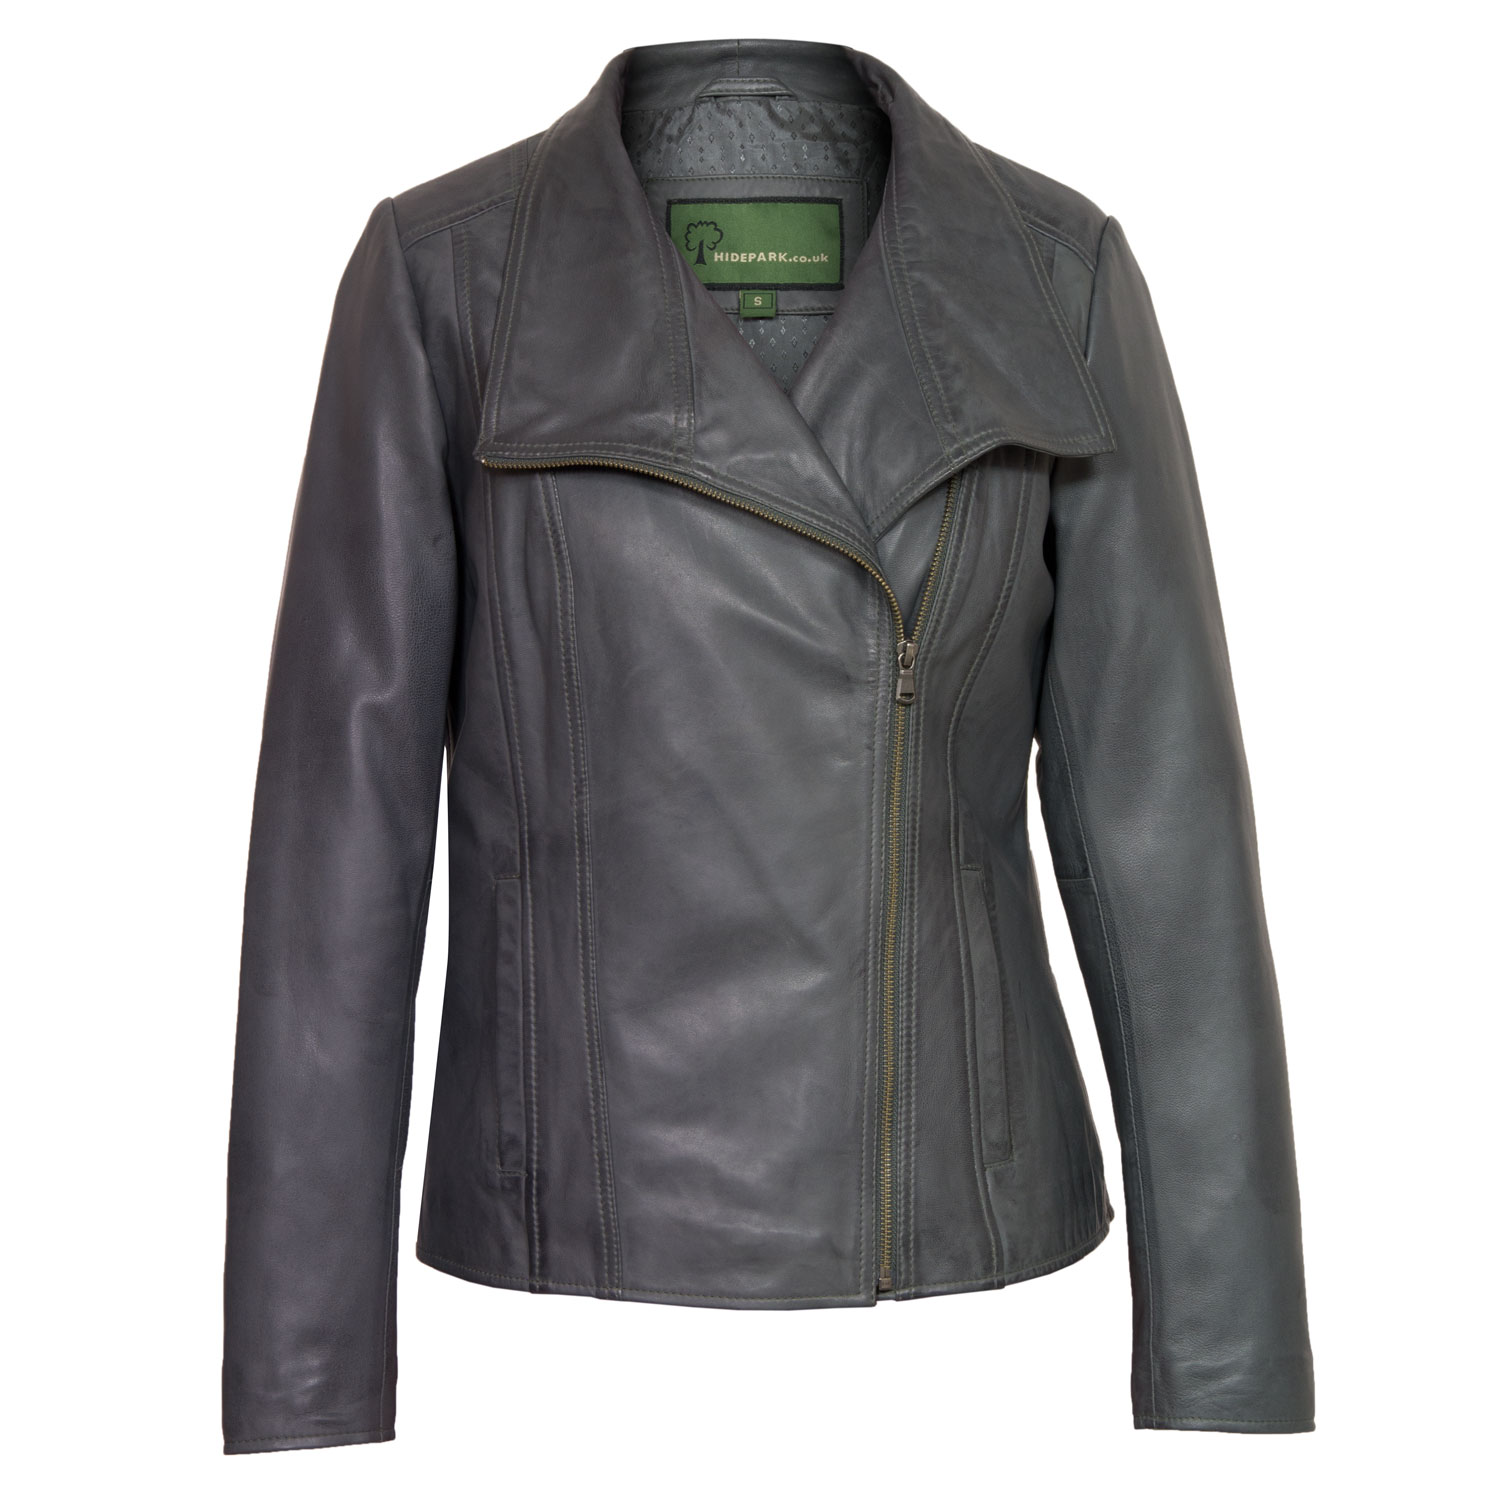 Women's Grey Leather Biker Jacket: Cayla